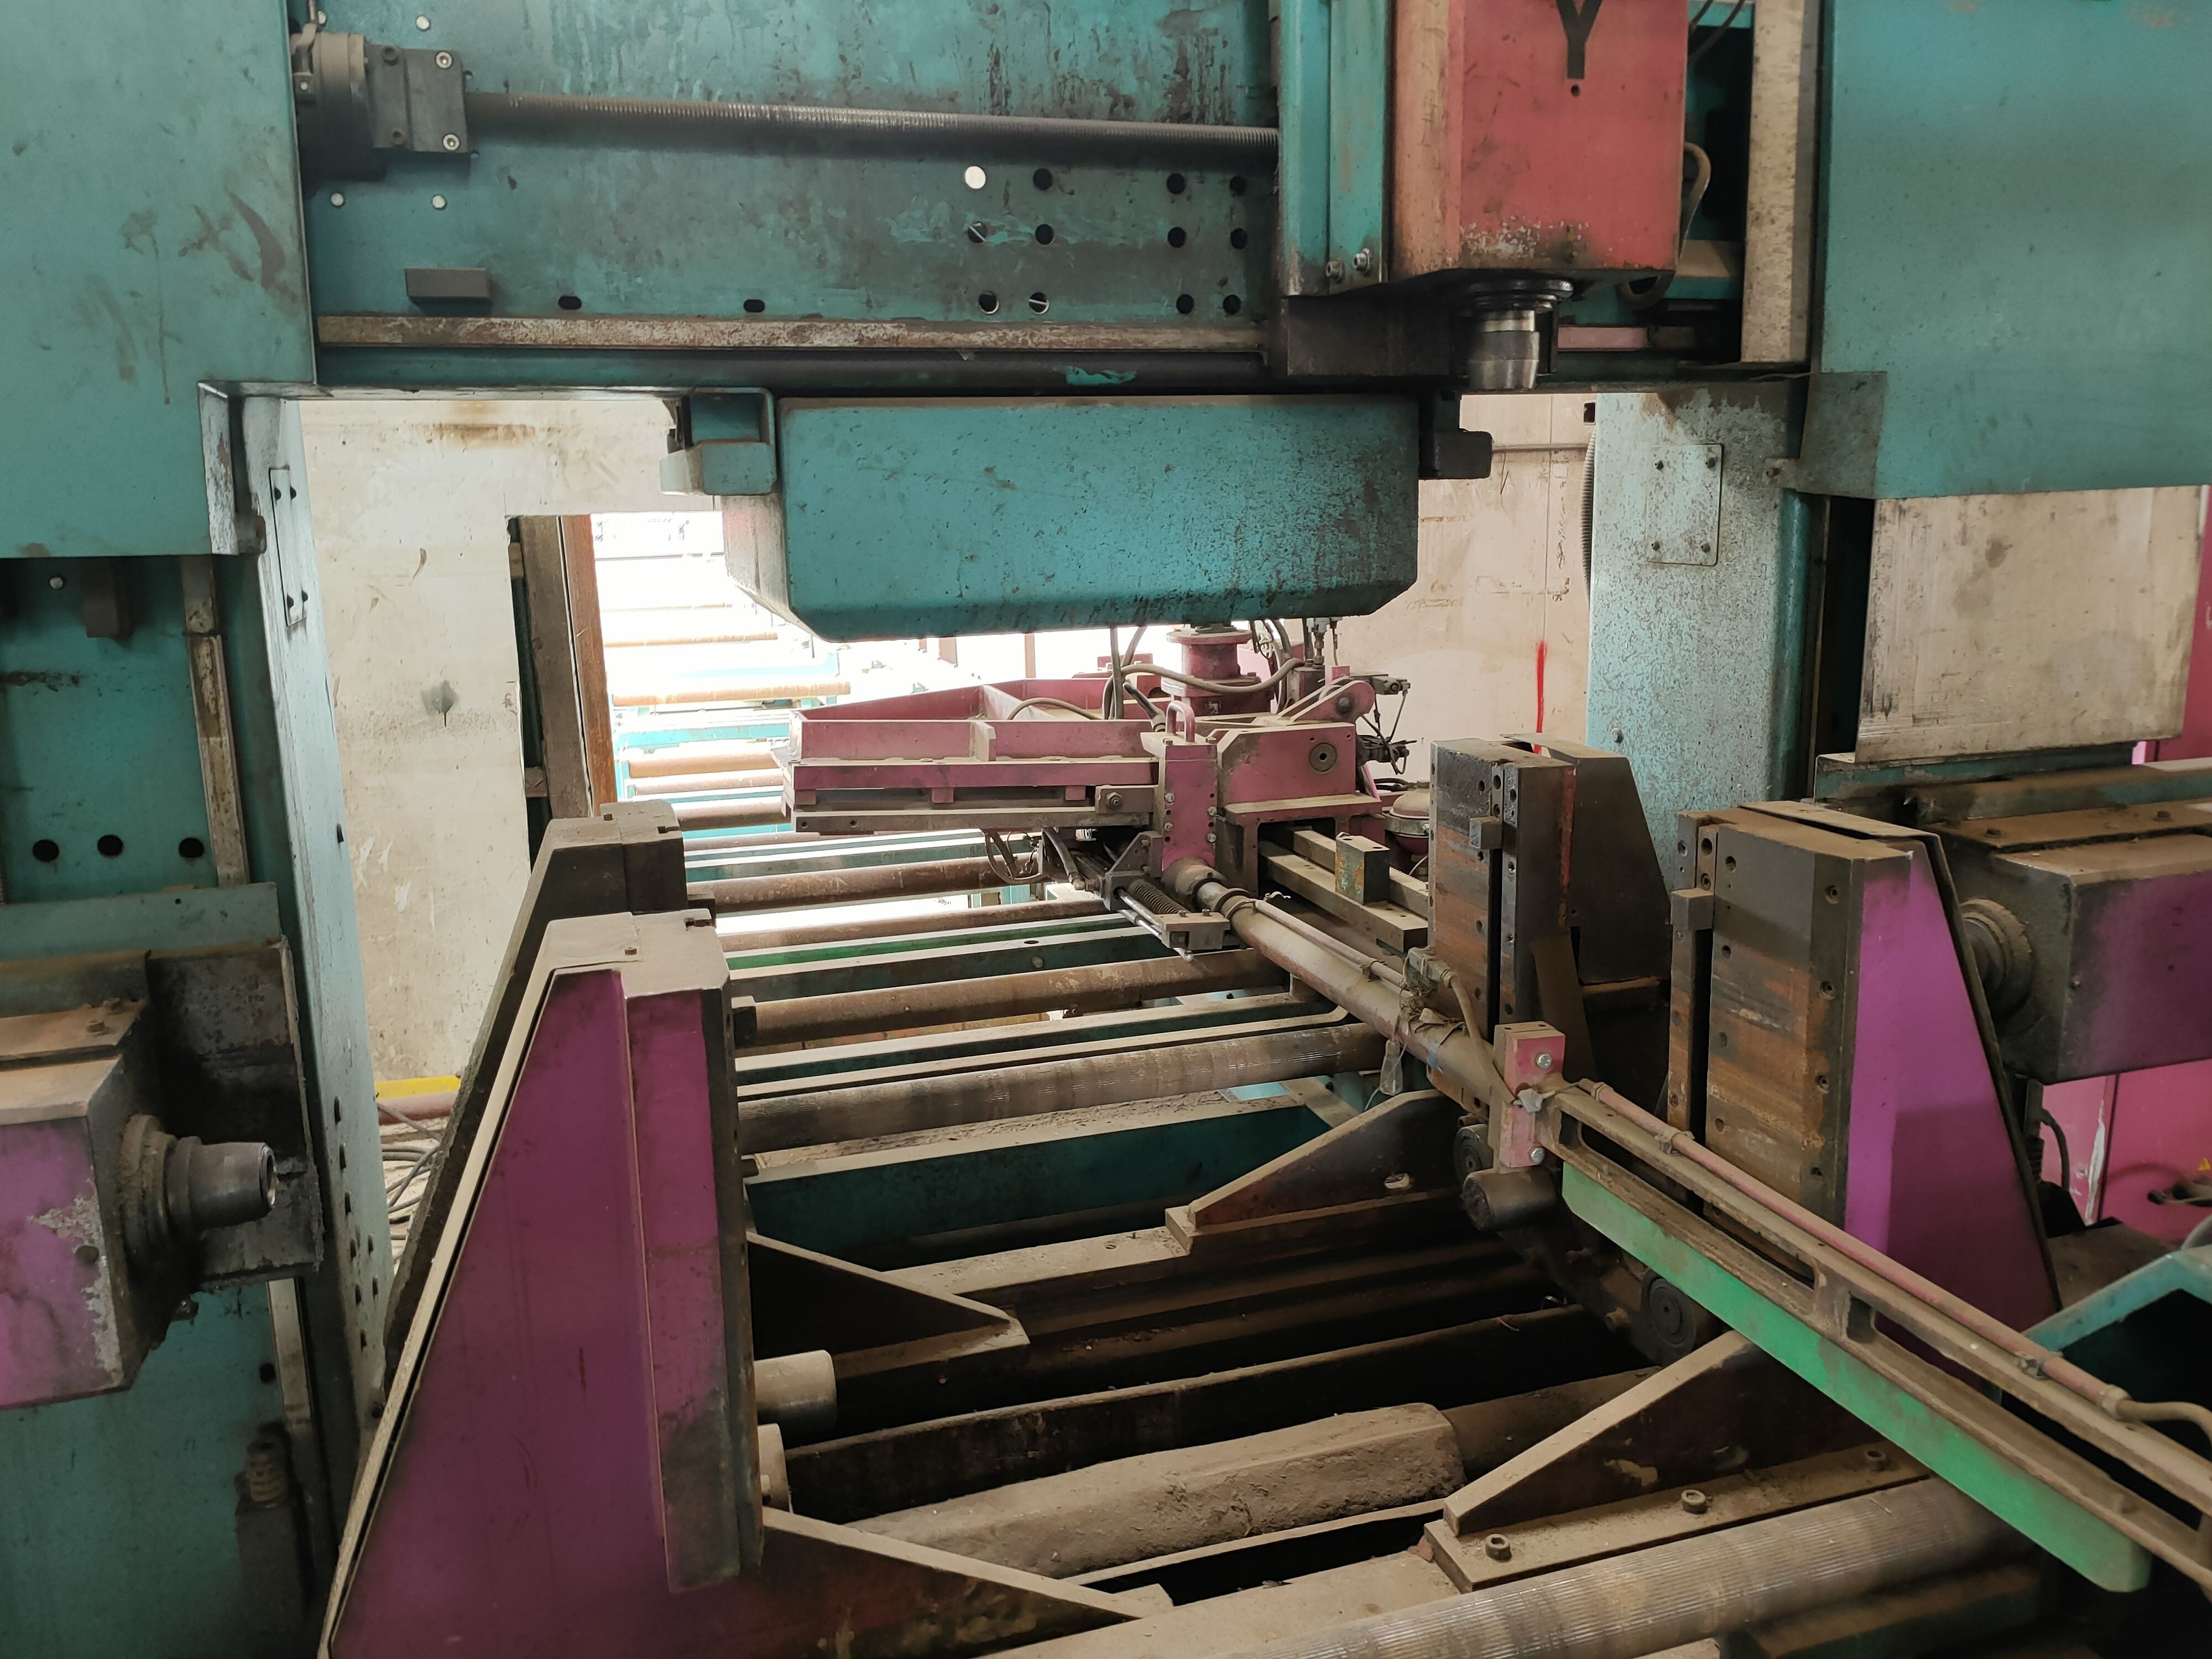 Kaltenbach Sawing & Drilling Line - Image 2 of 8